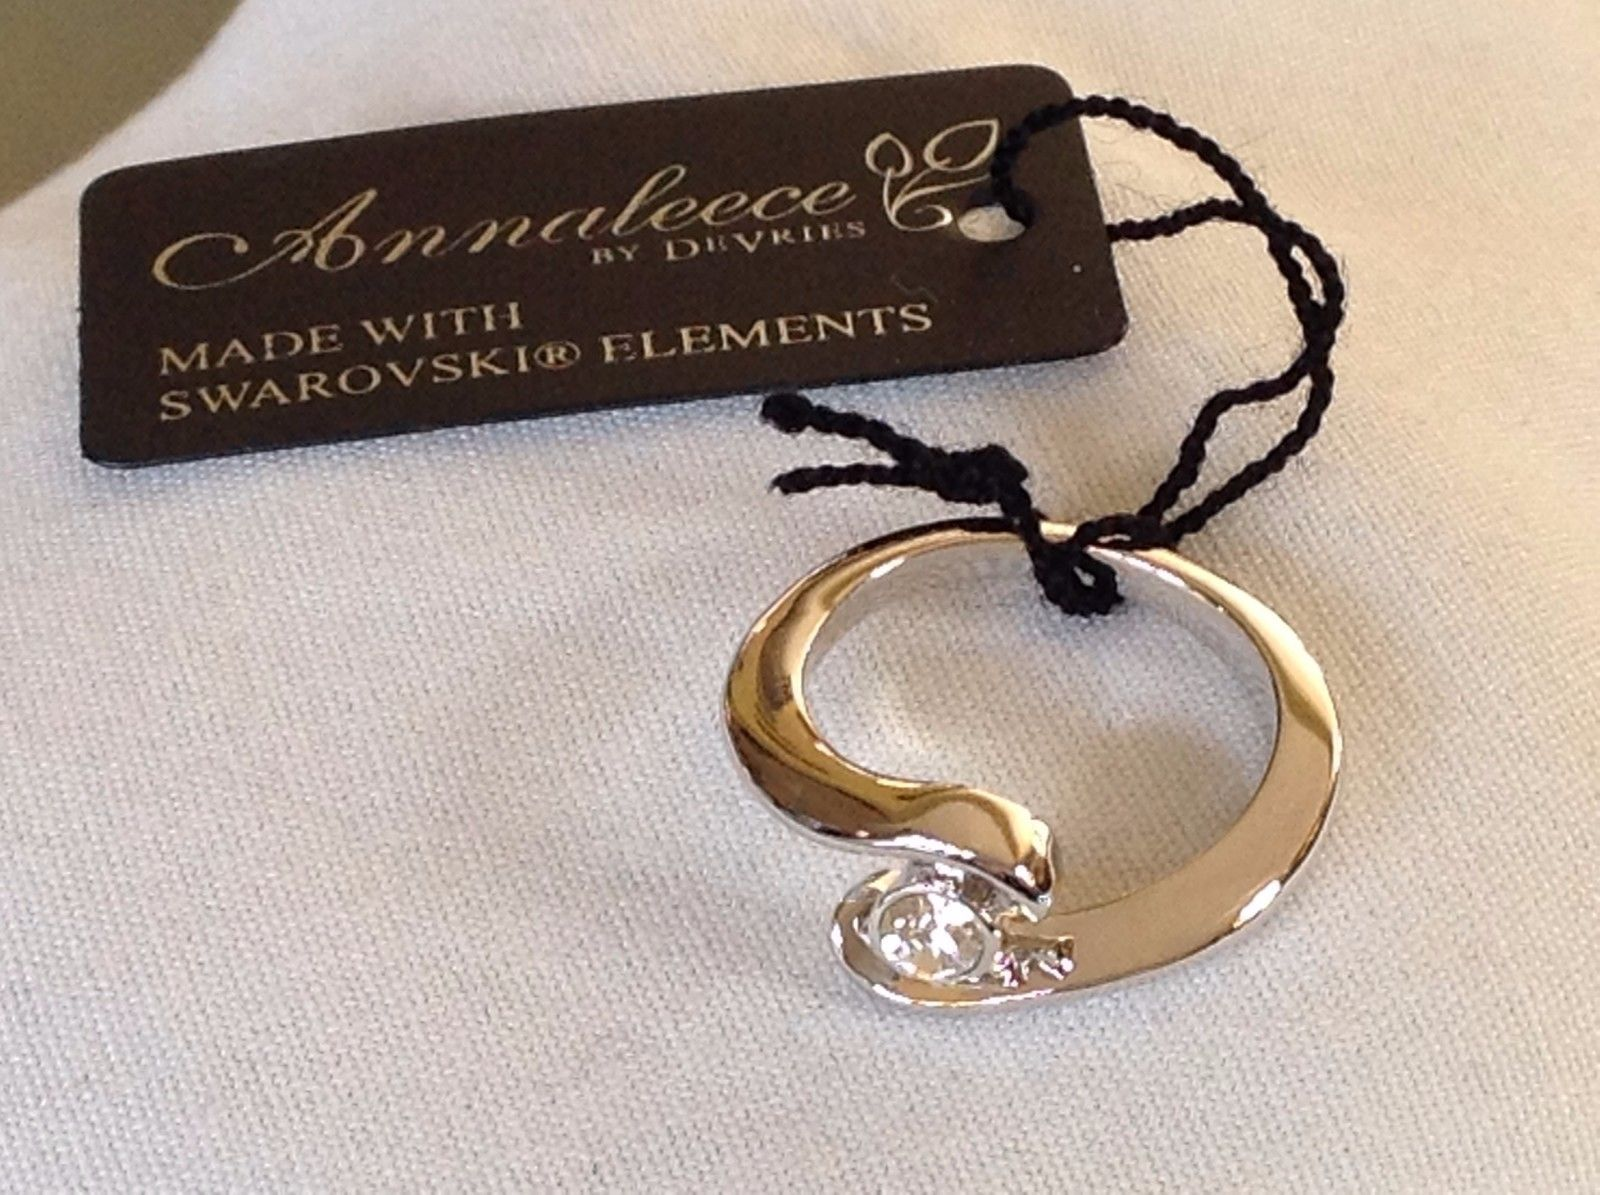 NWT Annaleece Ring Starry Eyed 22 Karat Gold Rhodium with Swarovski Elements 6